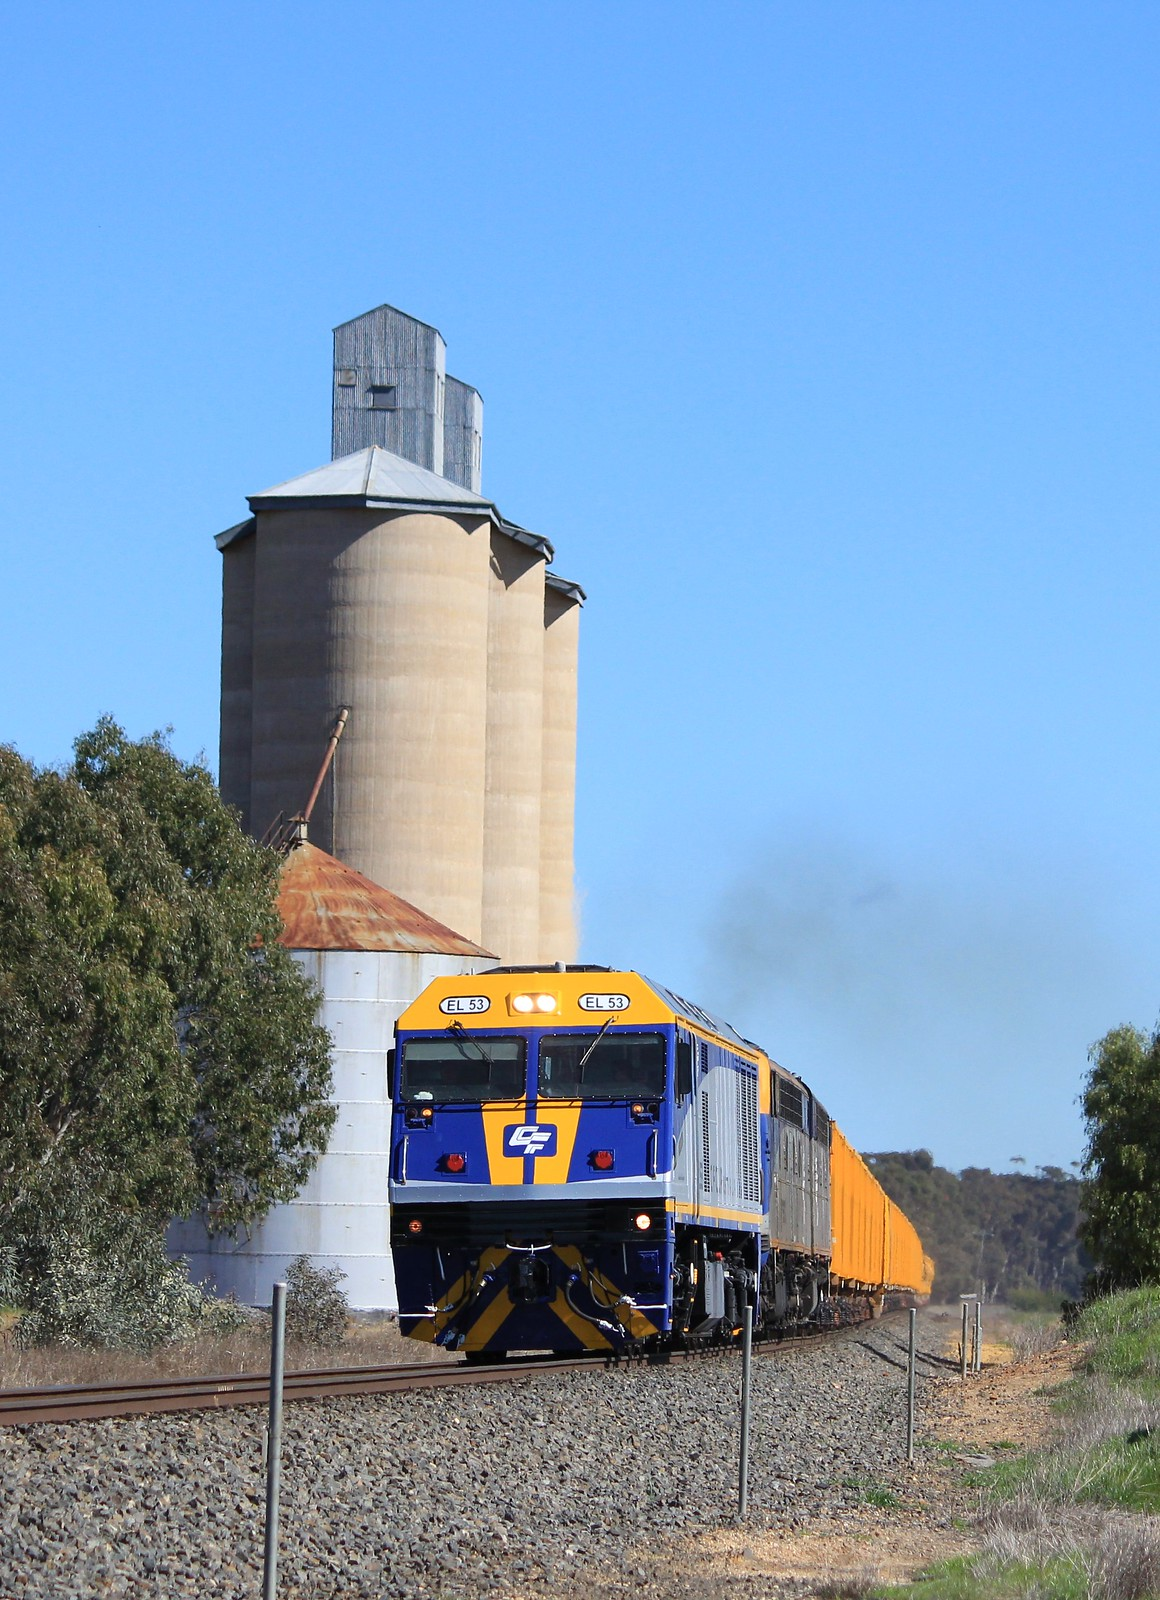 EL53 S300 and S311 power up-grade through Wail on 8704 transfer train to Goulburn by bukk05